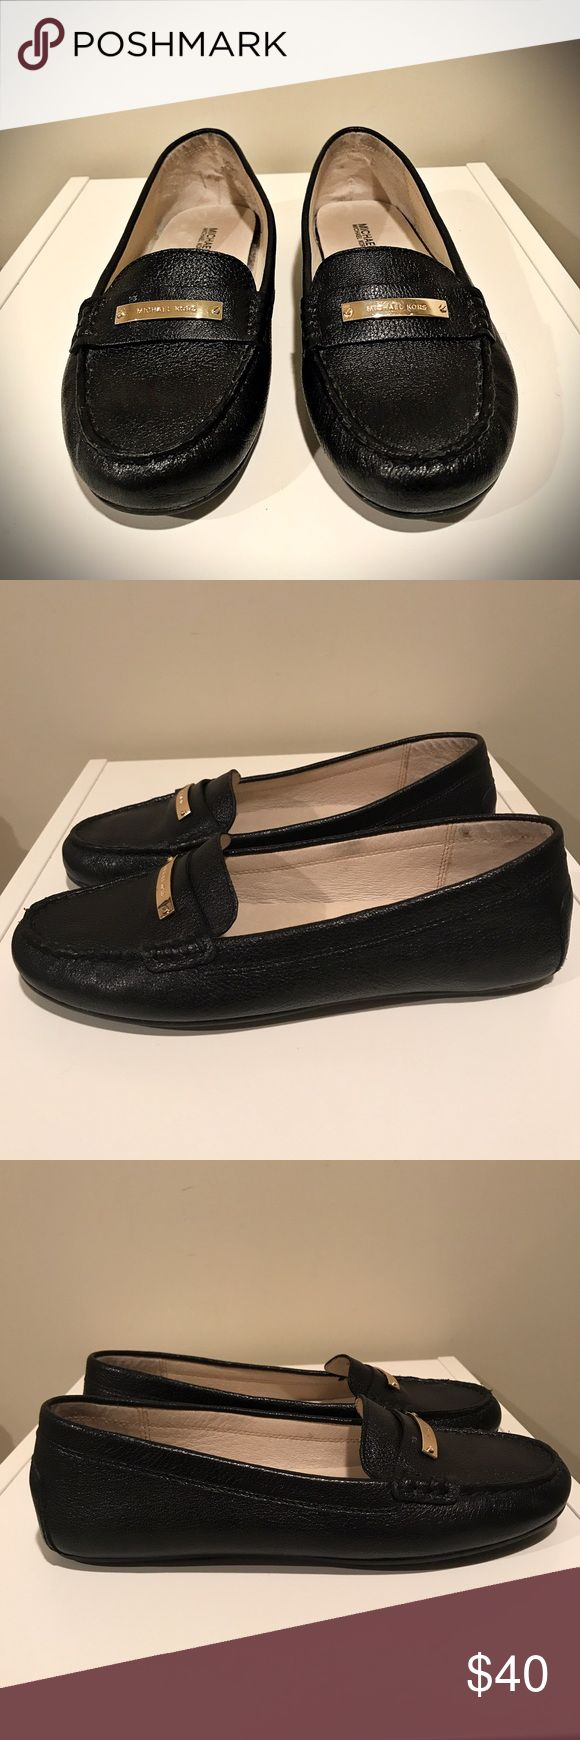 MICHAEL KORS  Everett Leather Loafer Brand new black Leather loafers by Michael KORS.  The added gold bar with logo is such a cute touch.  Dress these up or down.  New with out box! No Trades. MICHAEL Michael Kors Shoes Flats & Loafers